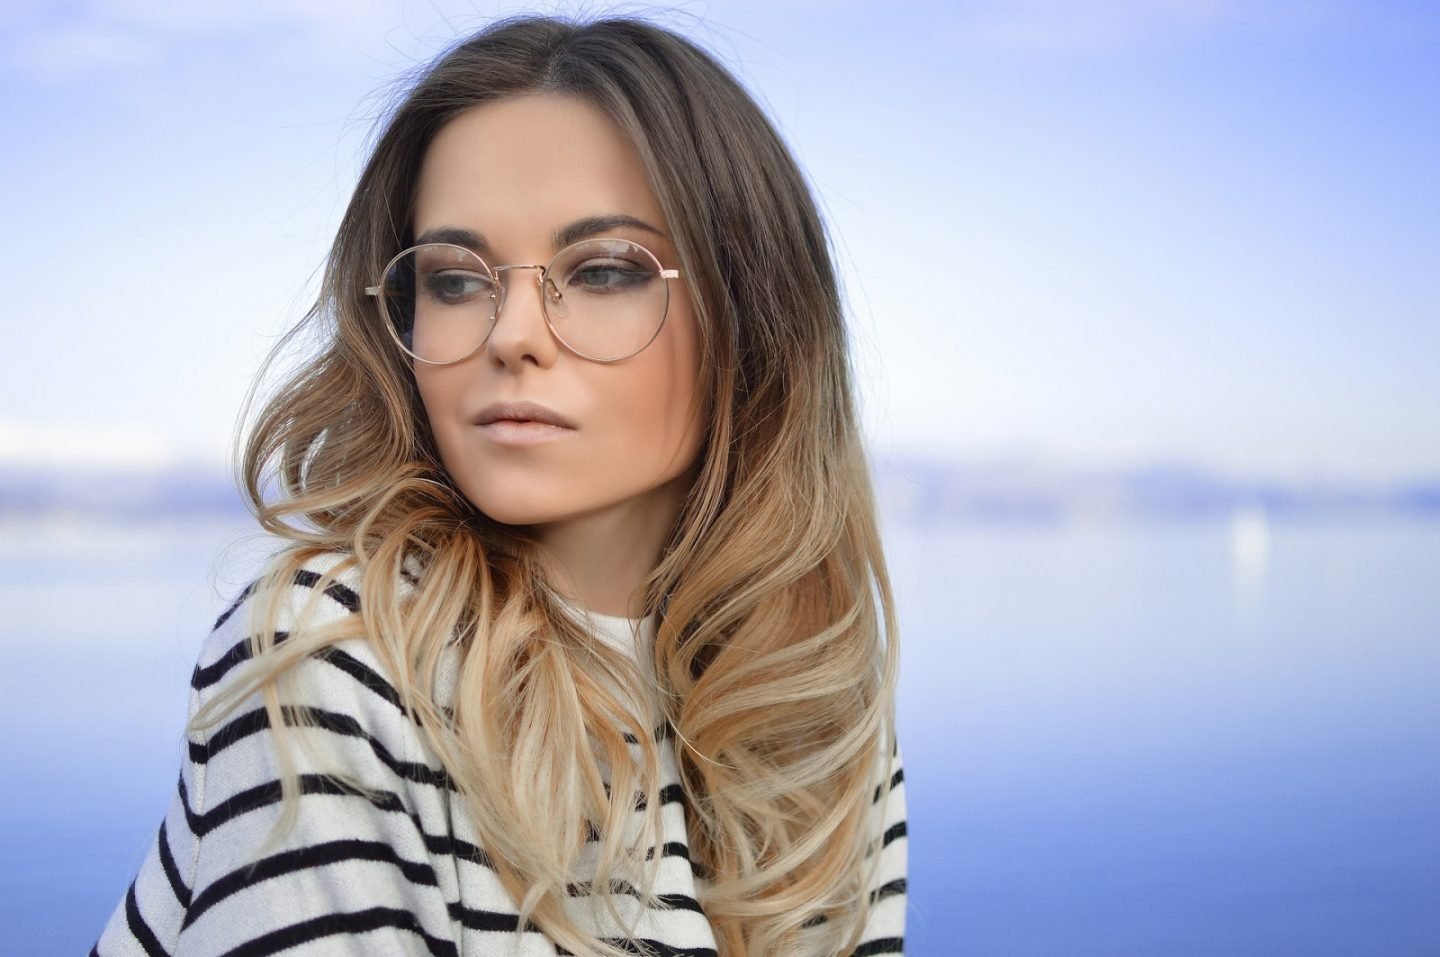 CHOOSING THE RIGHT EYEGLASSES: CONSIDER YOUR LIFESTYLE AND PERSONALITY